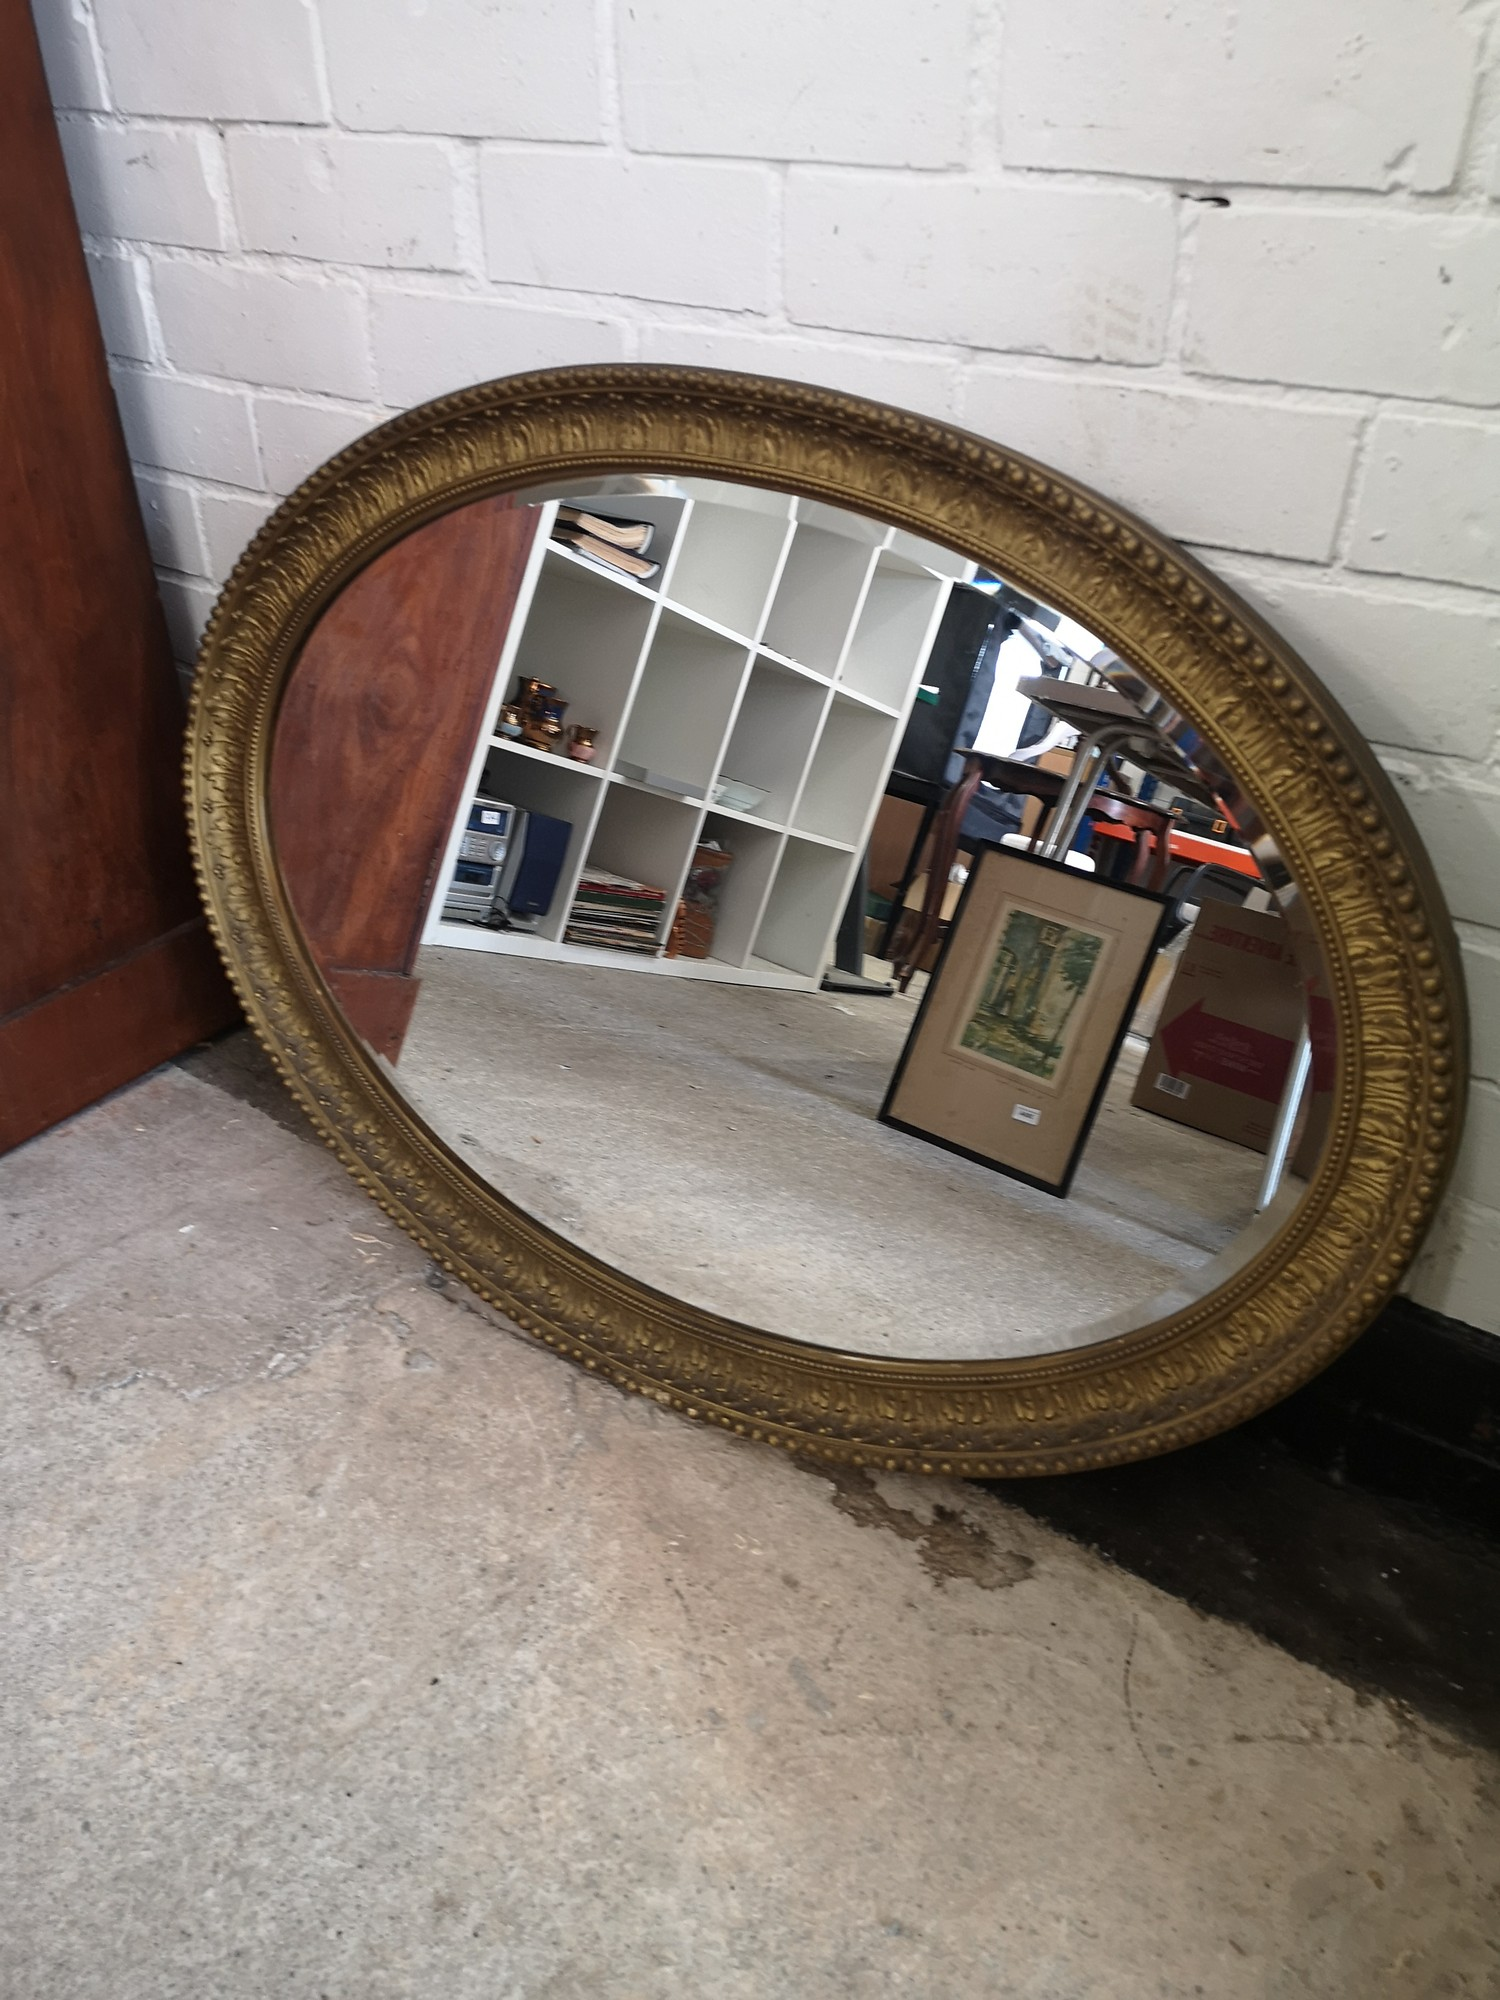 Large victorian oval mirror with carved design.